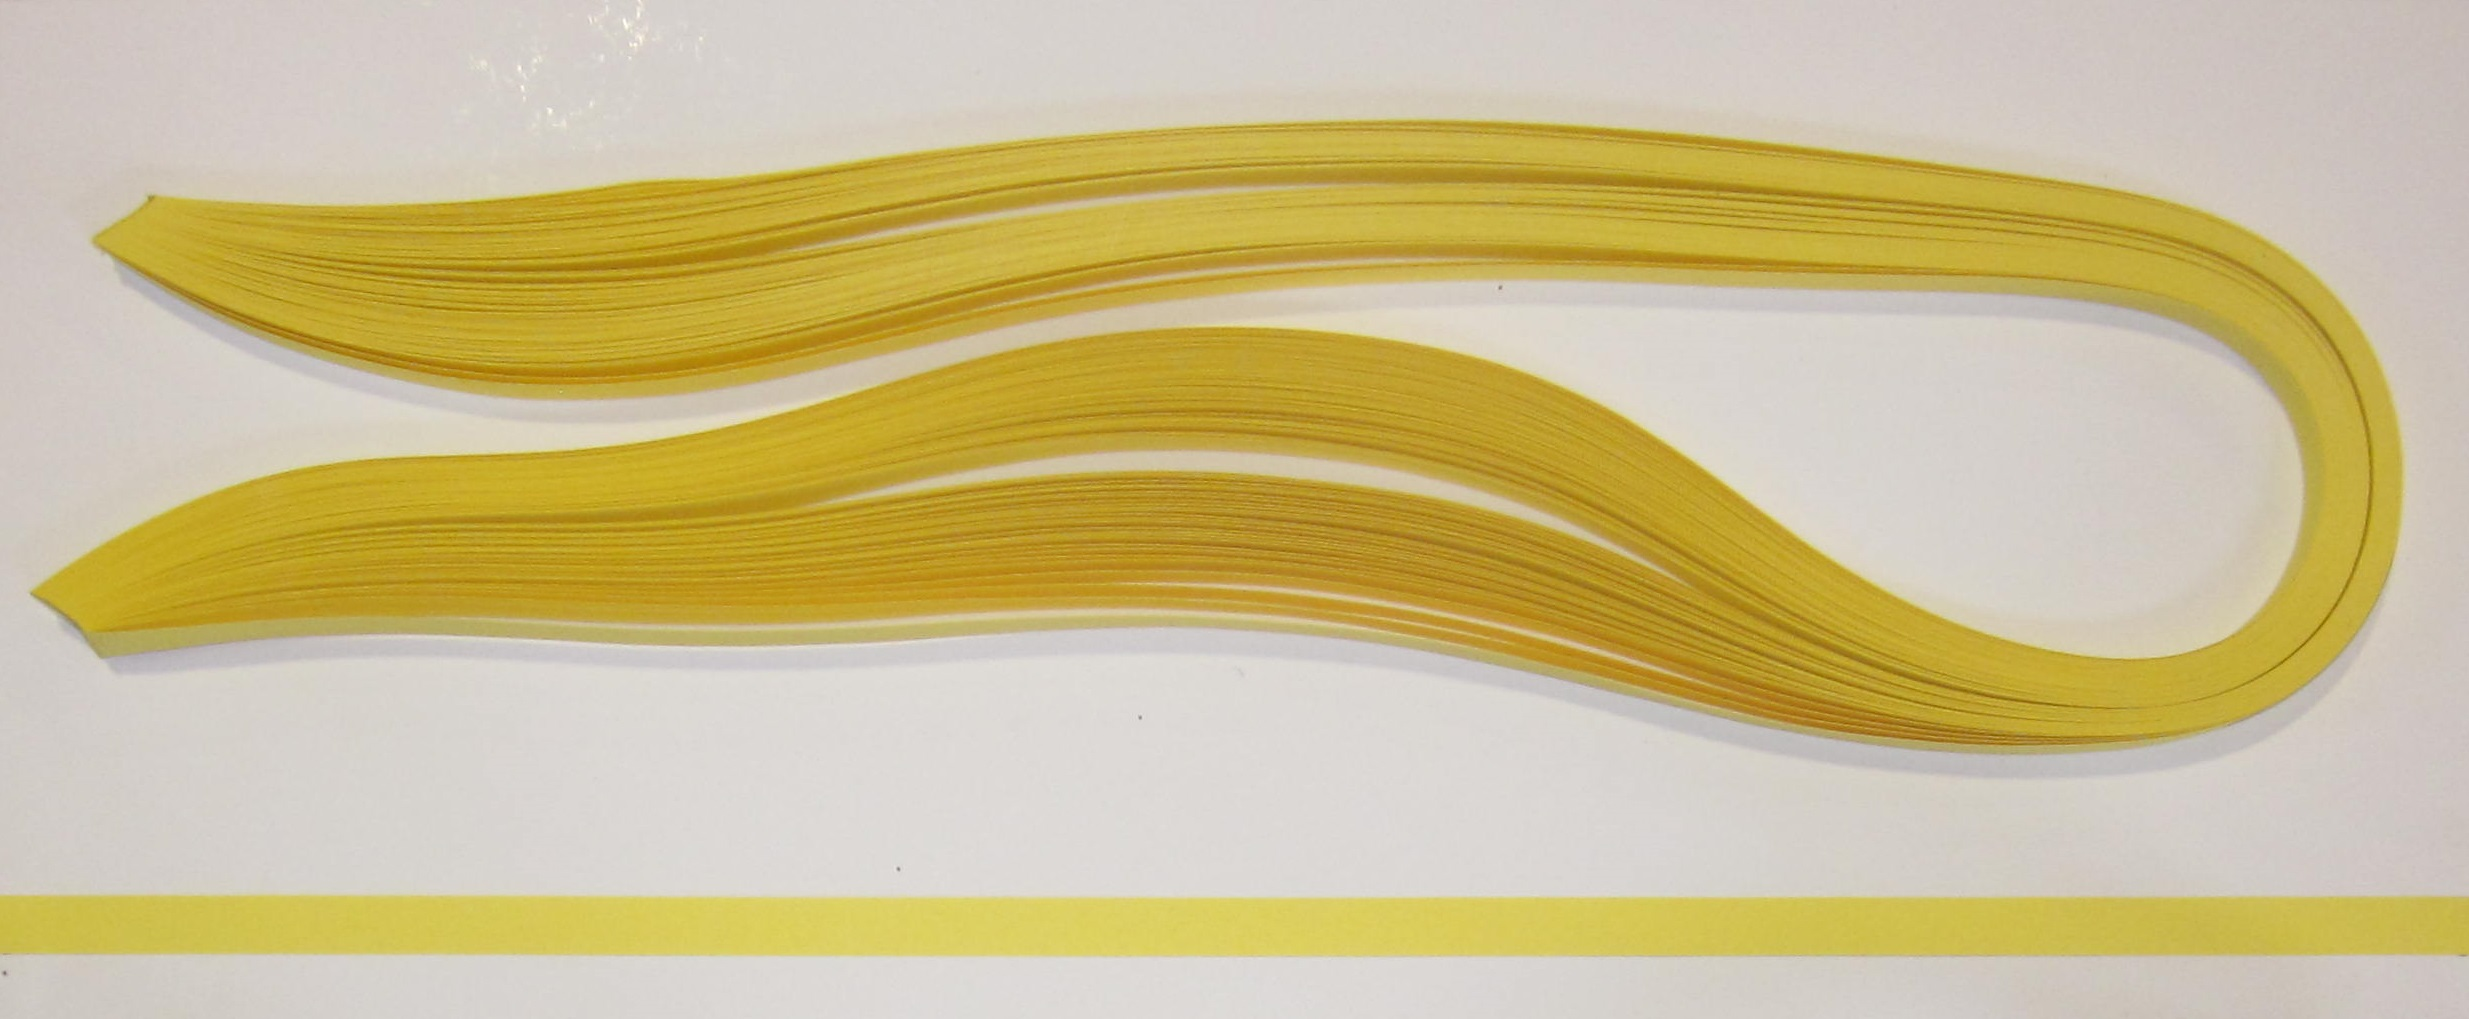 PAPEL QUILLING 315, 9MM. AMARILLO ORO